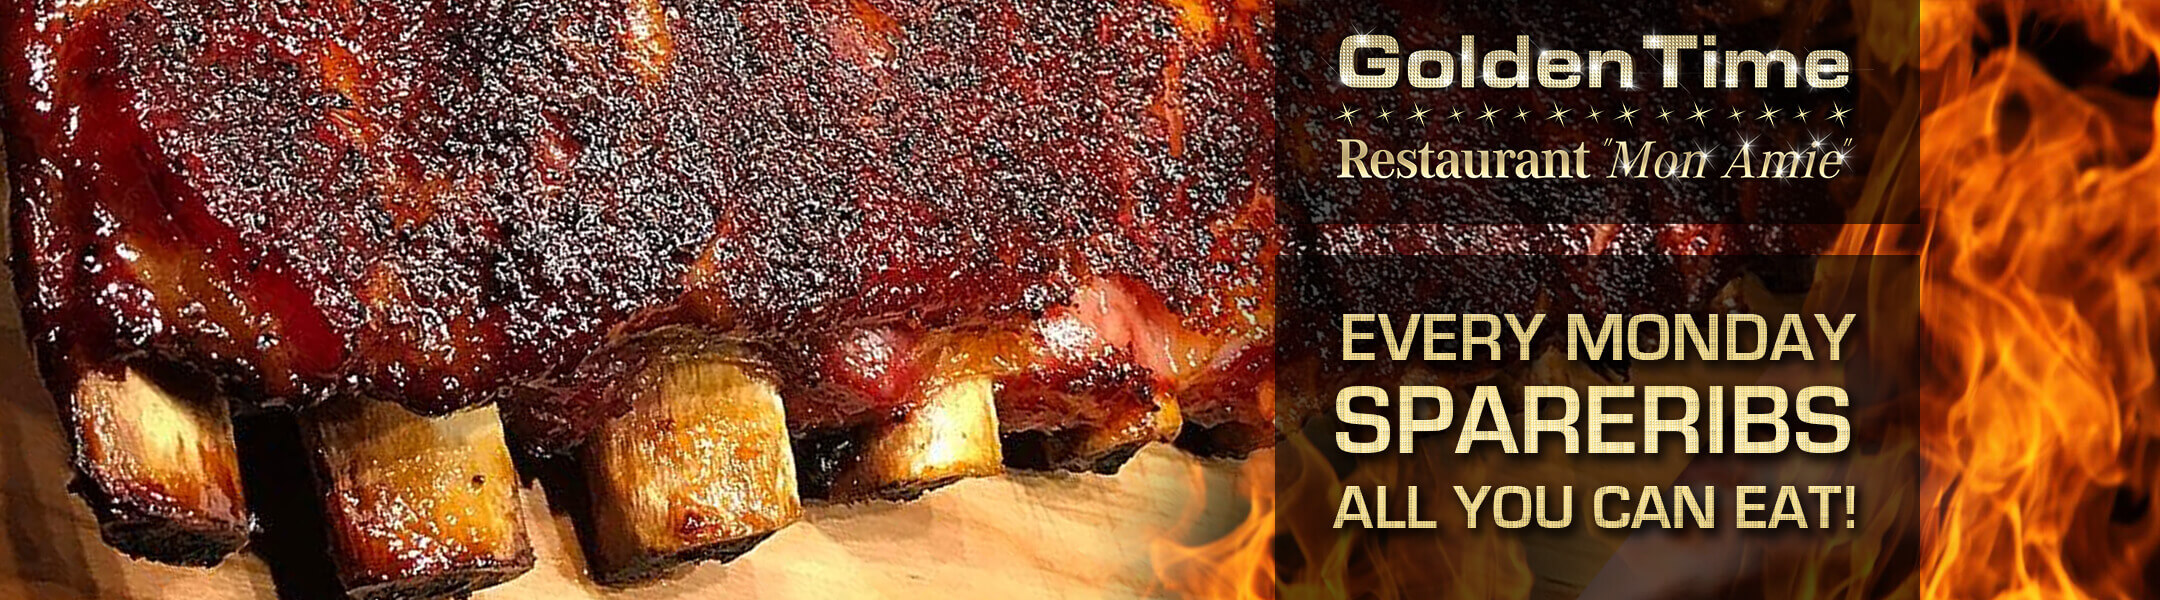 Every Monday: Spareribs All You Can Eat at the Restaurant Mon Amie at GoldenTime!